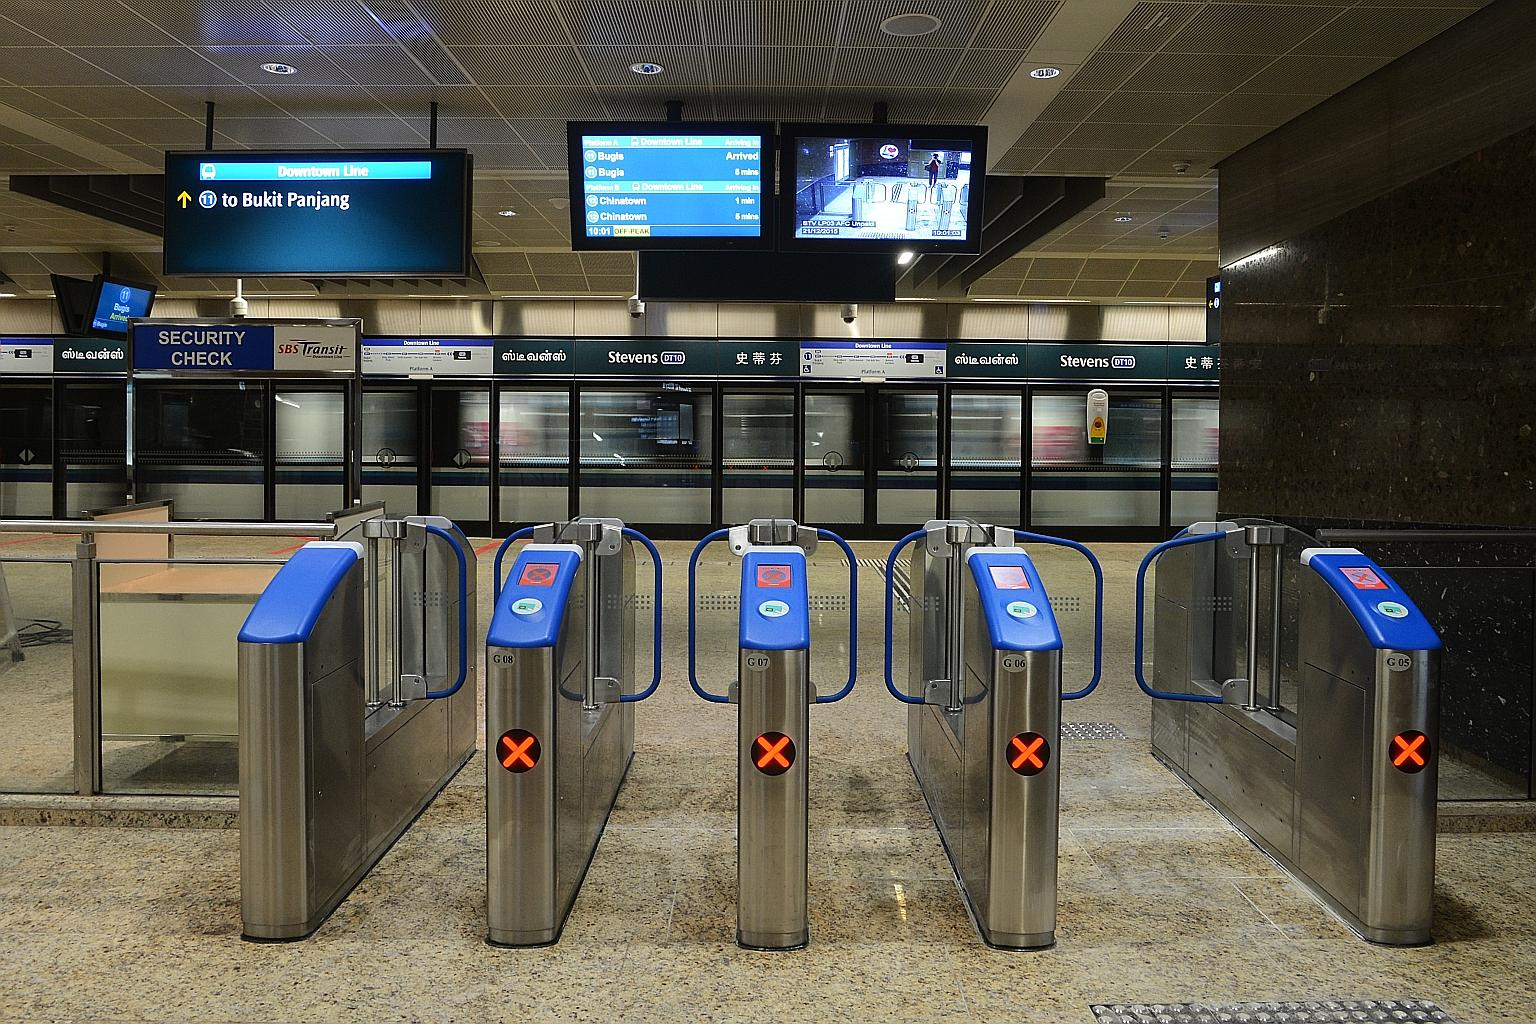 SimplyGo introduces new levels of convenience for commuters, photo from  Straits Times